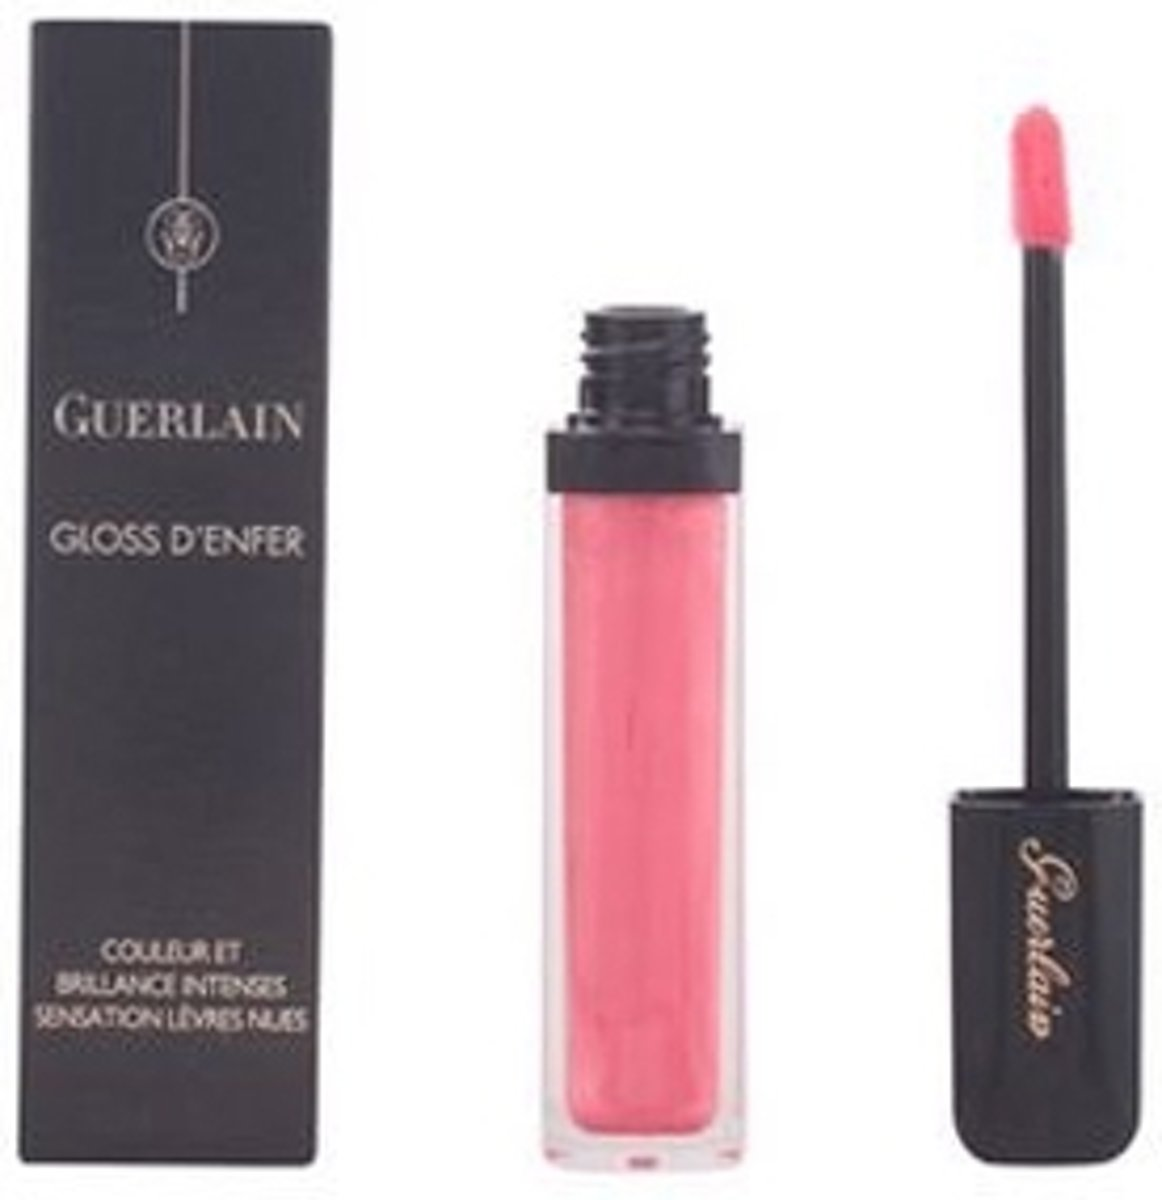 Guerlain Gloss DEnfer Maxi Shine Intense Colour - Browny Clap - Lipgloss